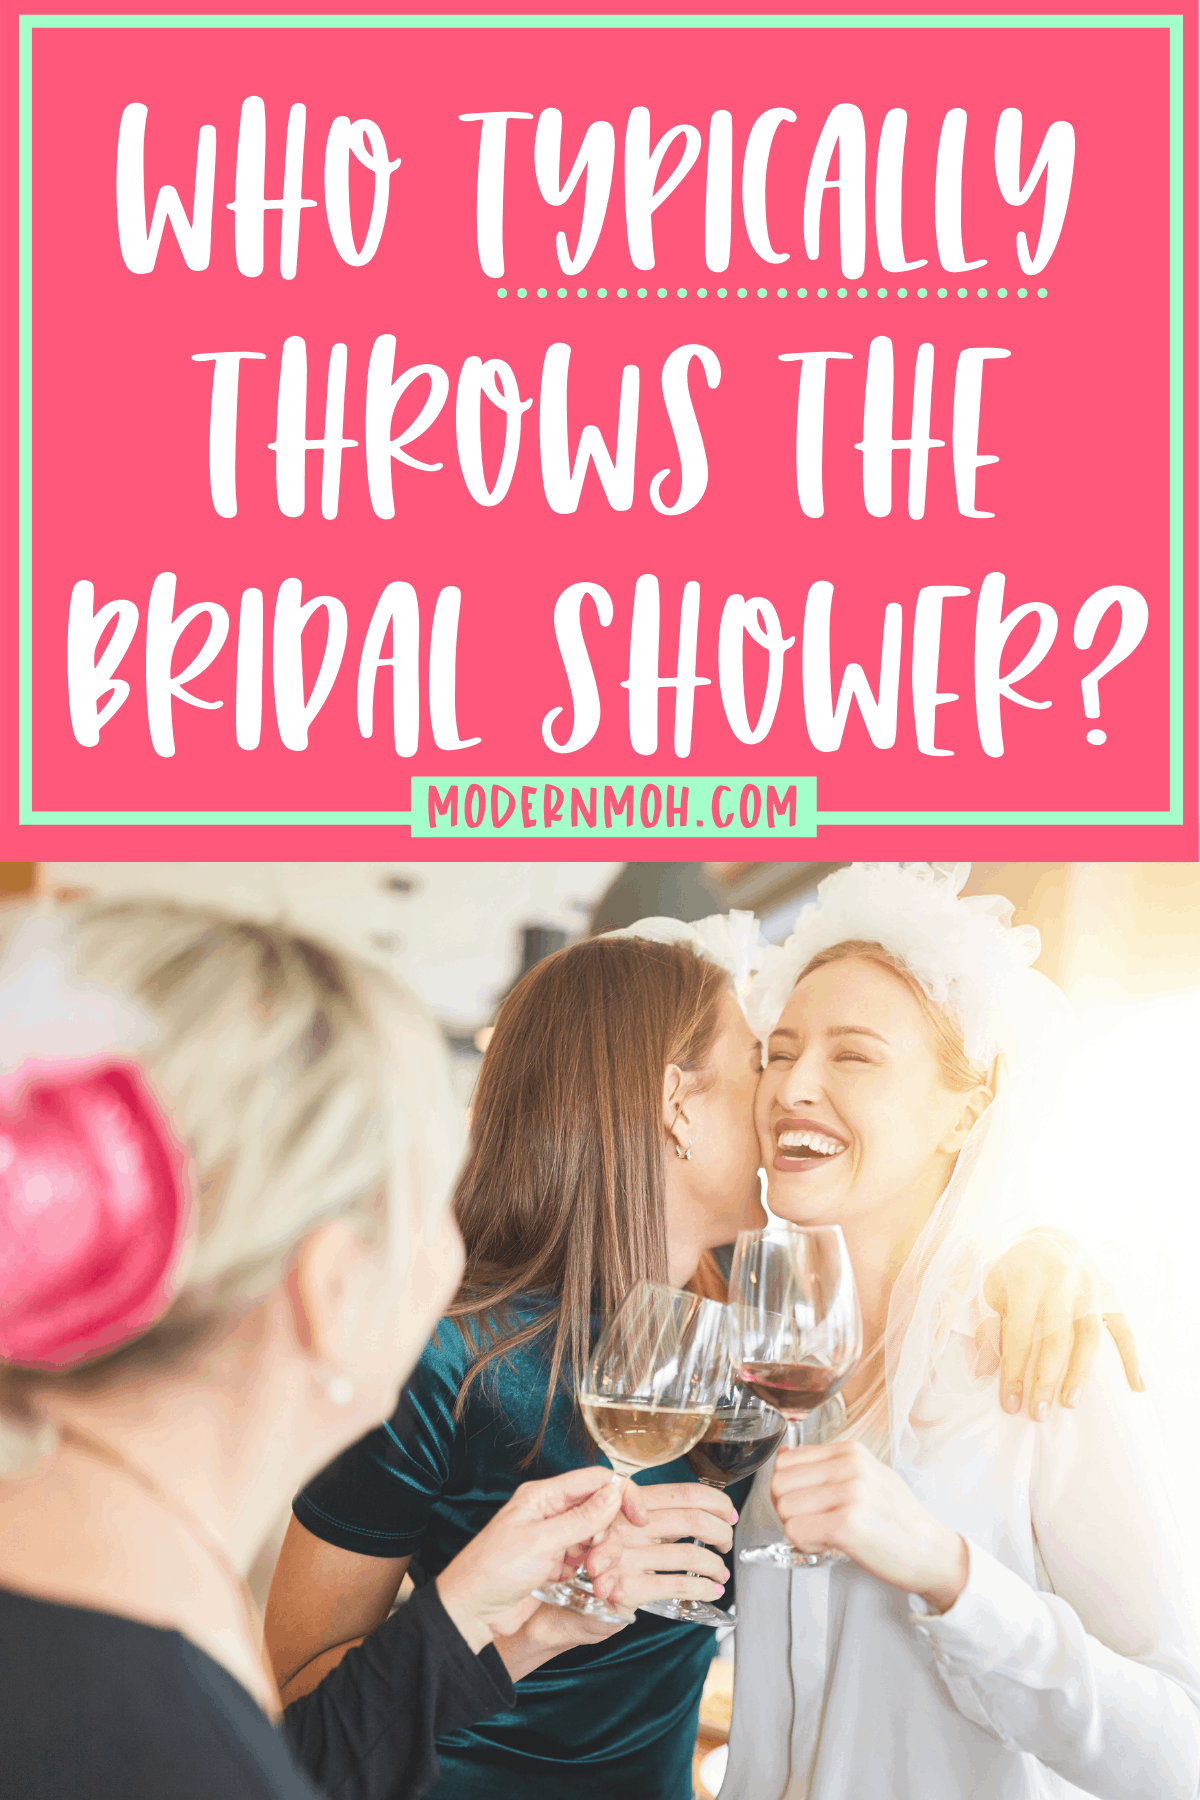 Who Throws the Bridal Shower?